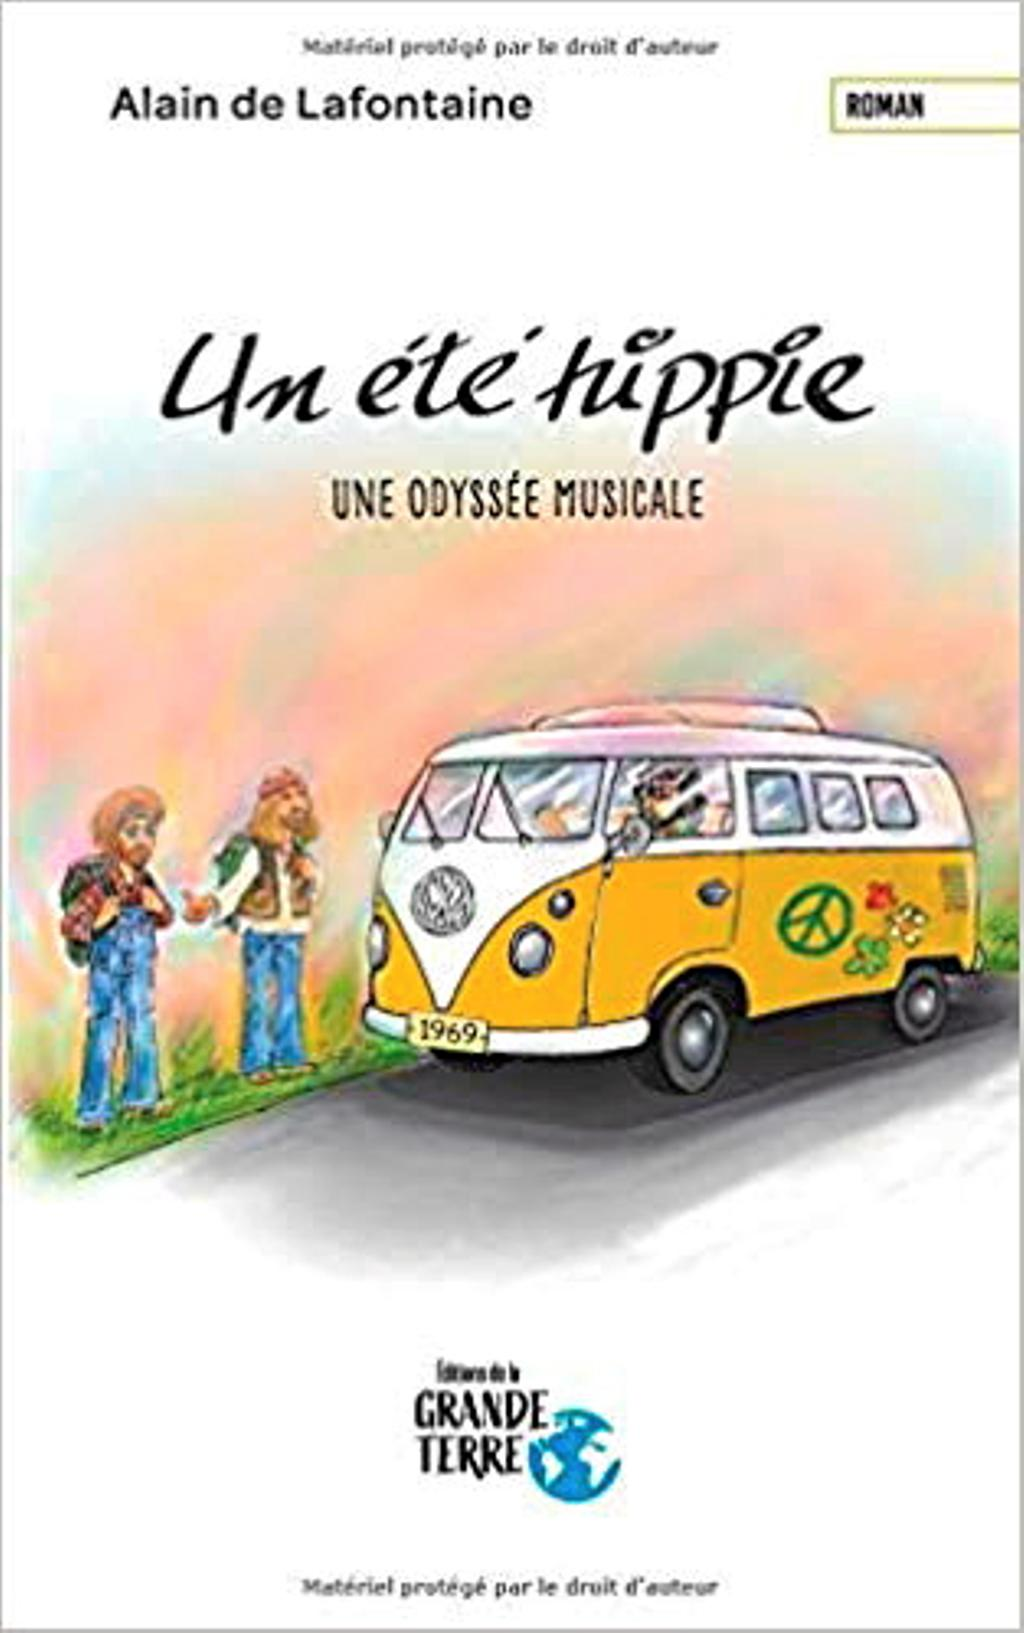 ALAIN DE LAFONTAINE UN ÉTÉ HIPPIE AUTOFICTION Éditions de la Grande Terre 250 pages